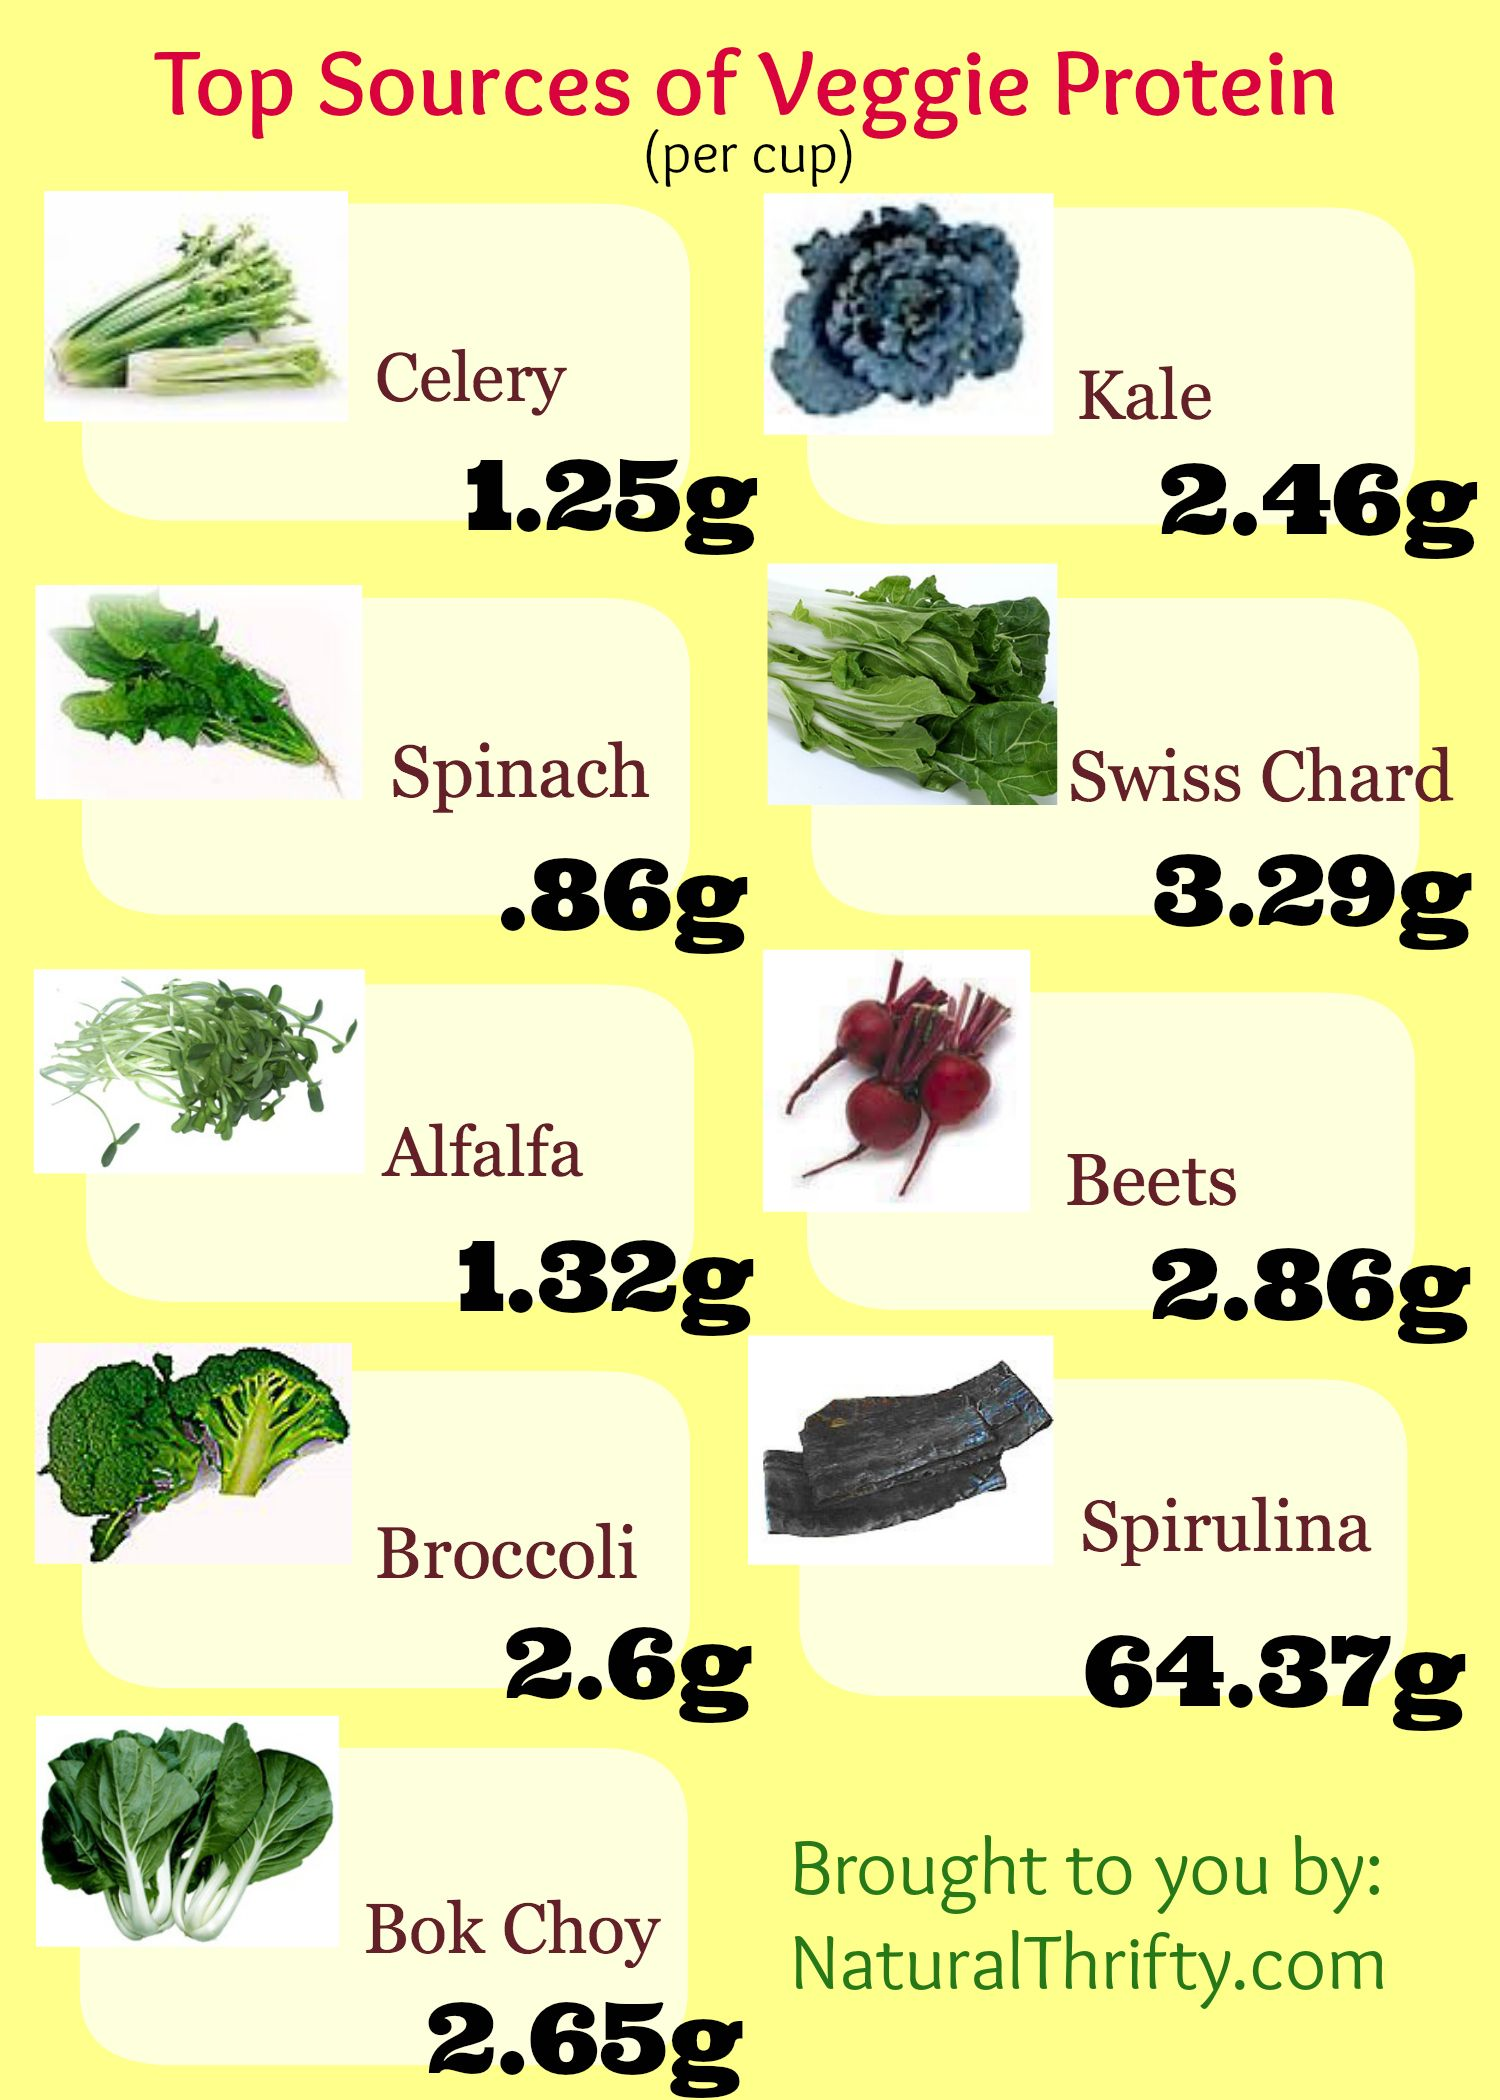 Vegetable juicing recipes veggie protein sources chart naturalthrifty also rh pinterest